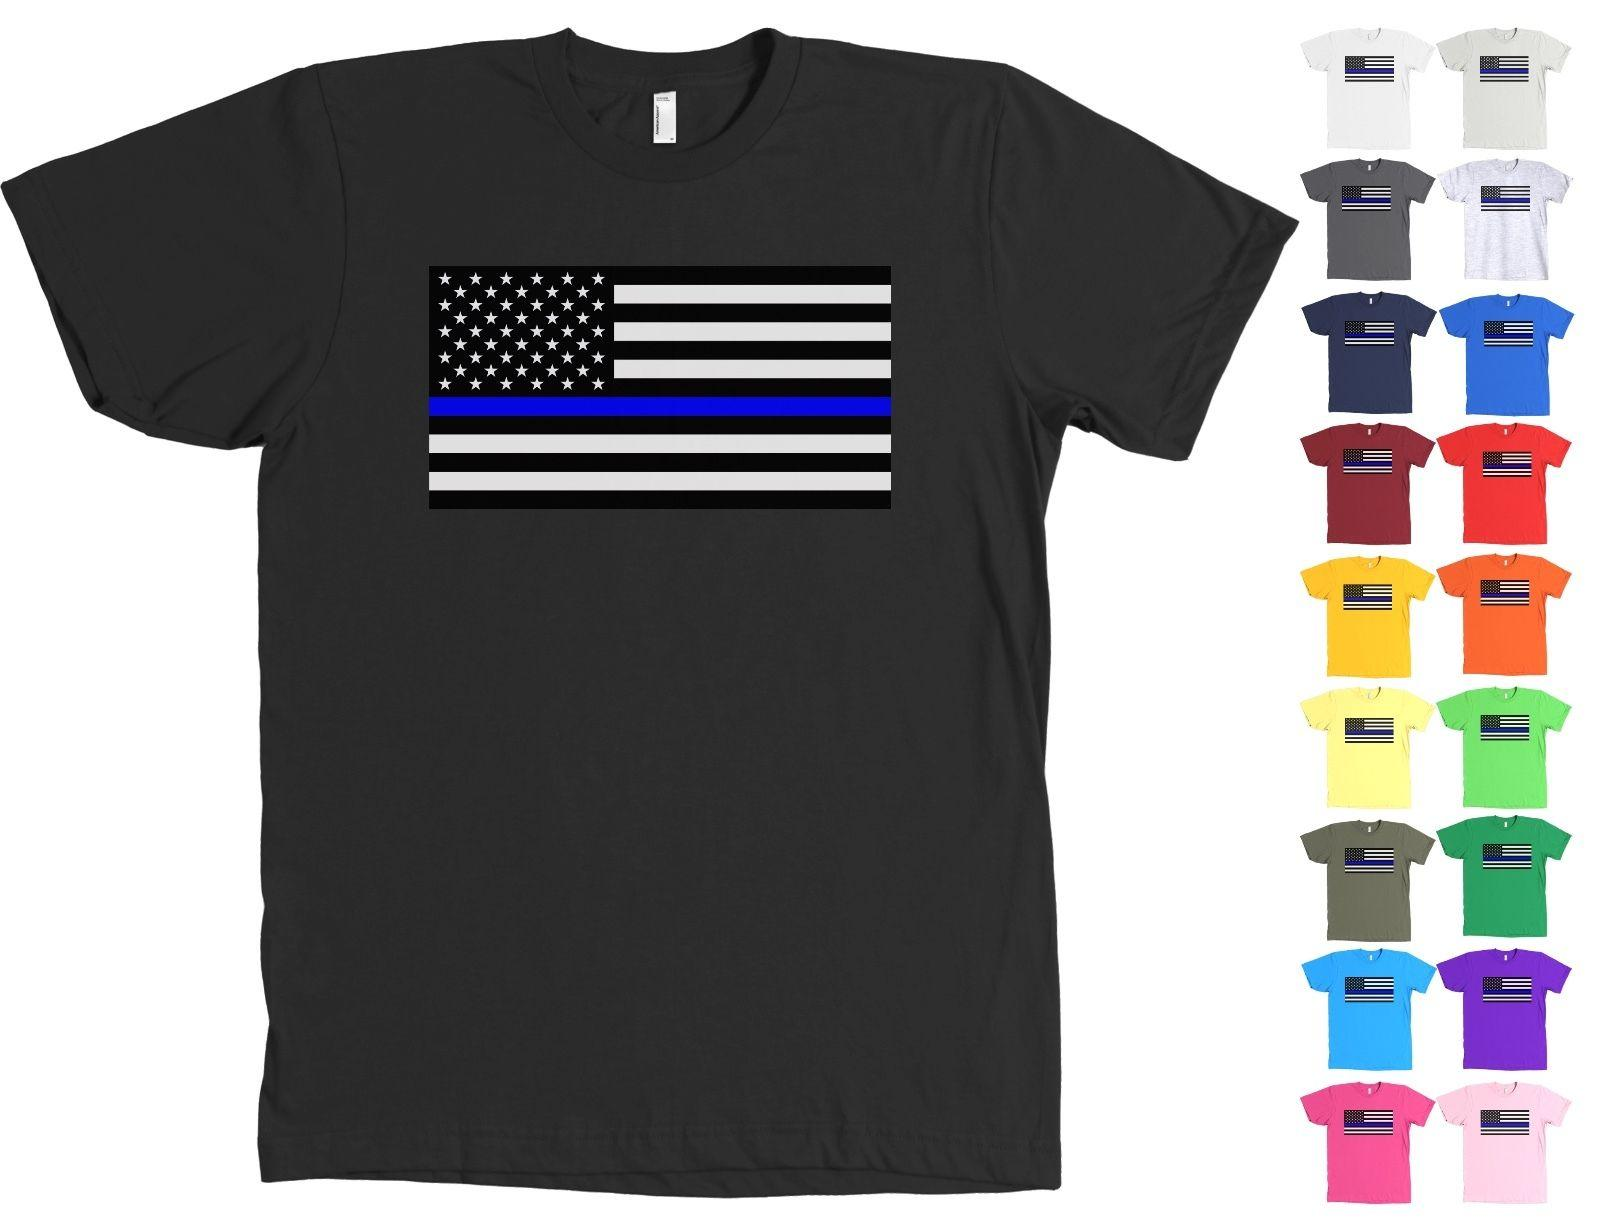 94caff6055ec80 Thin Blue Line Police Support American Flag Shirt Law Enforcement Online  Tee Shirts Shopping Funniest Tee Shirts From Sugarlisaxx, $11.01  DHgate.Com